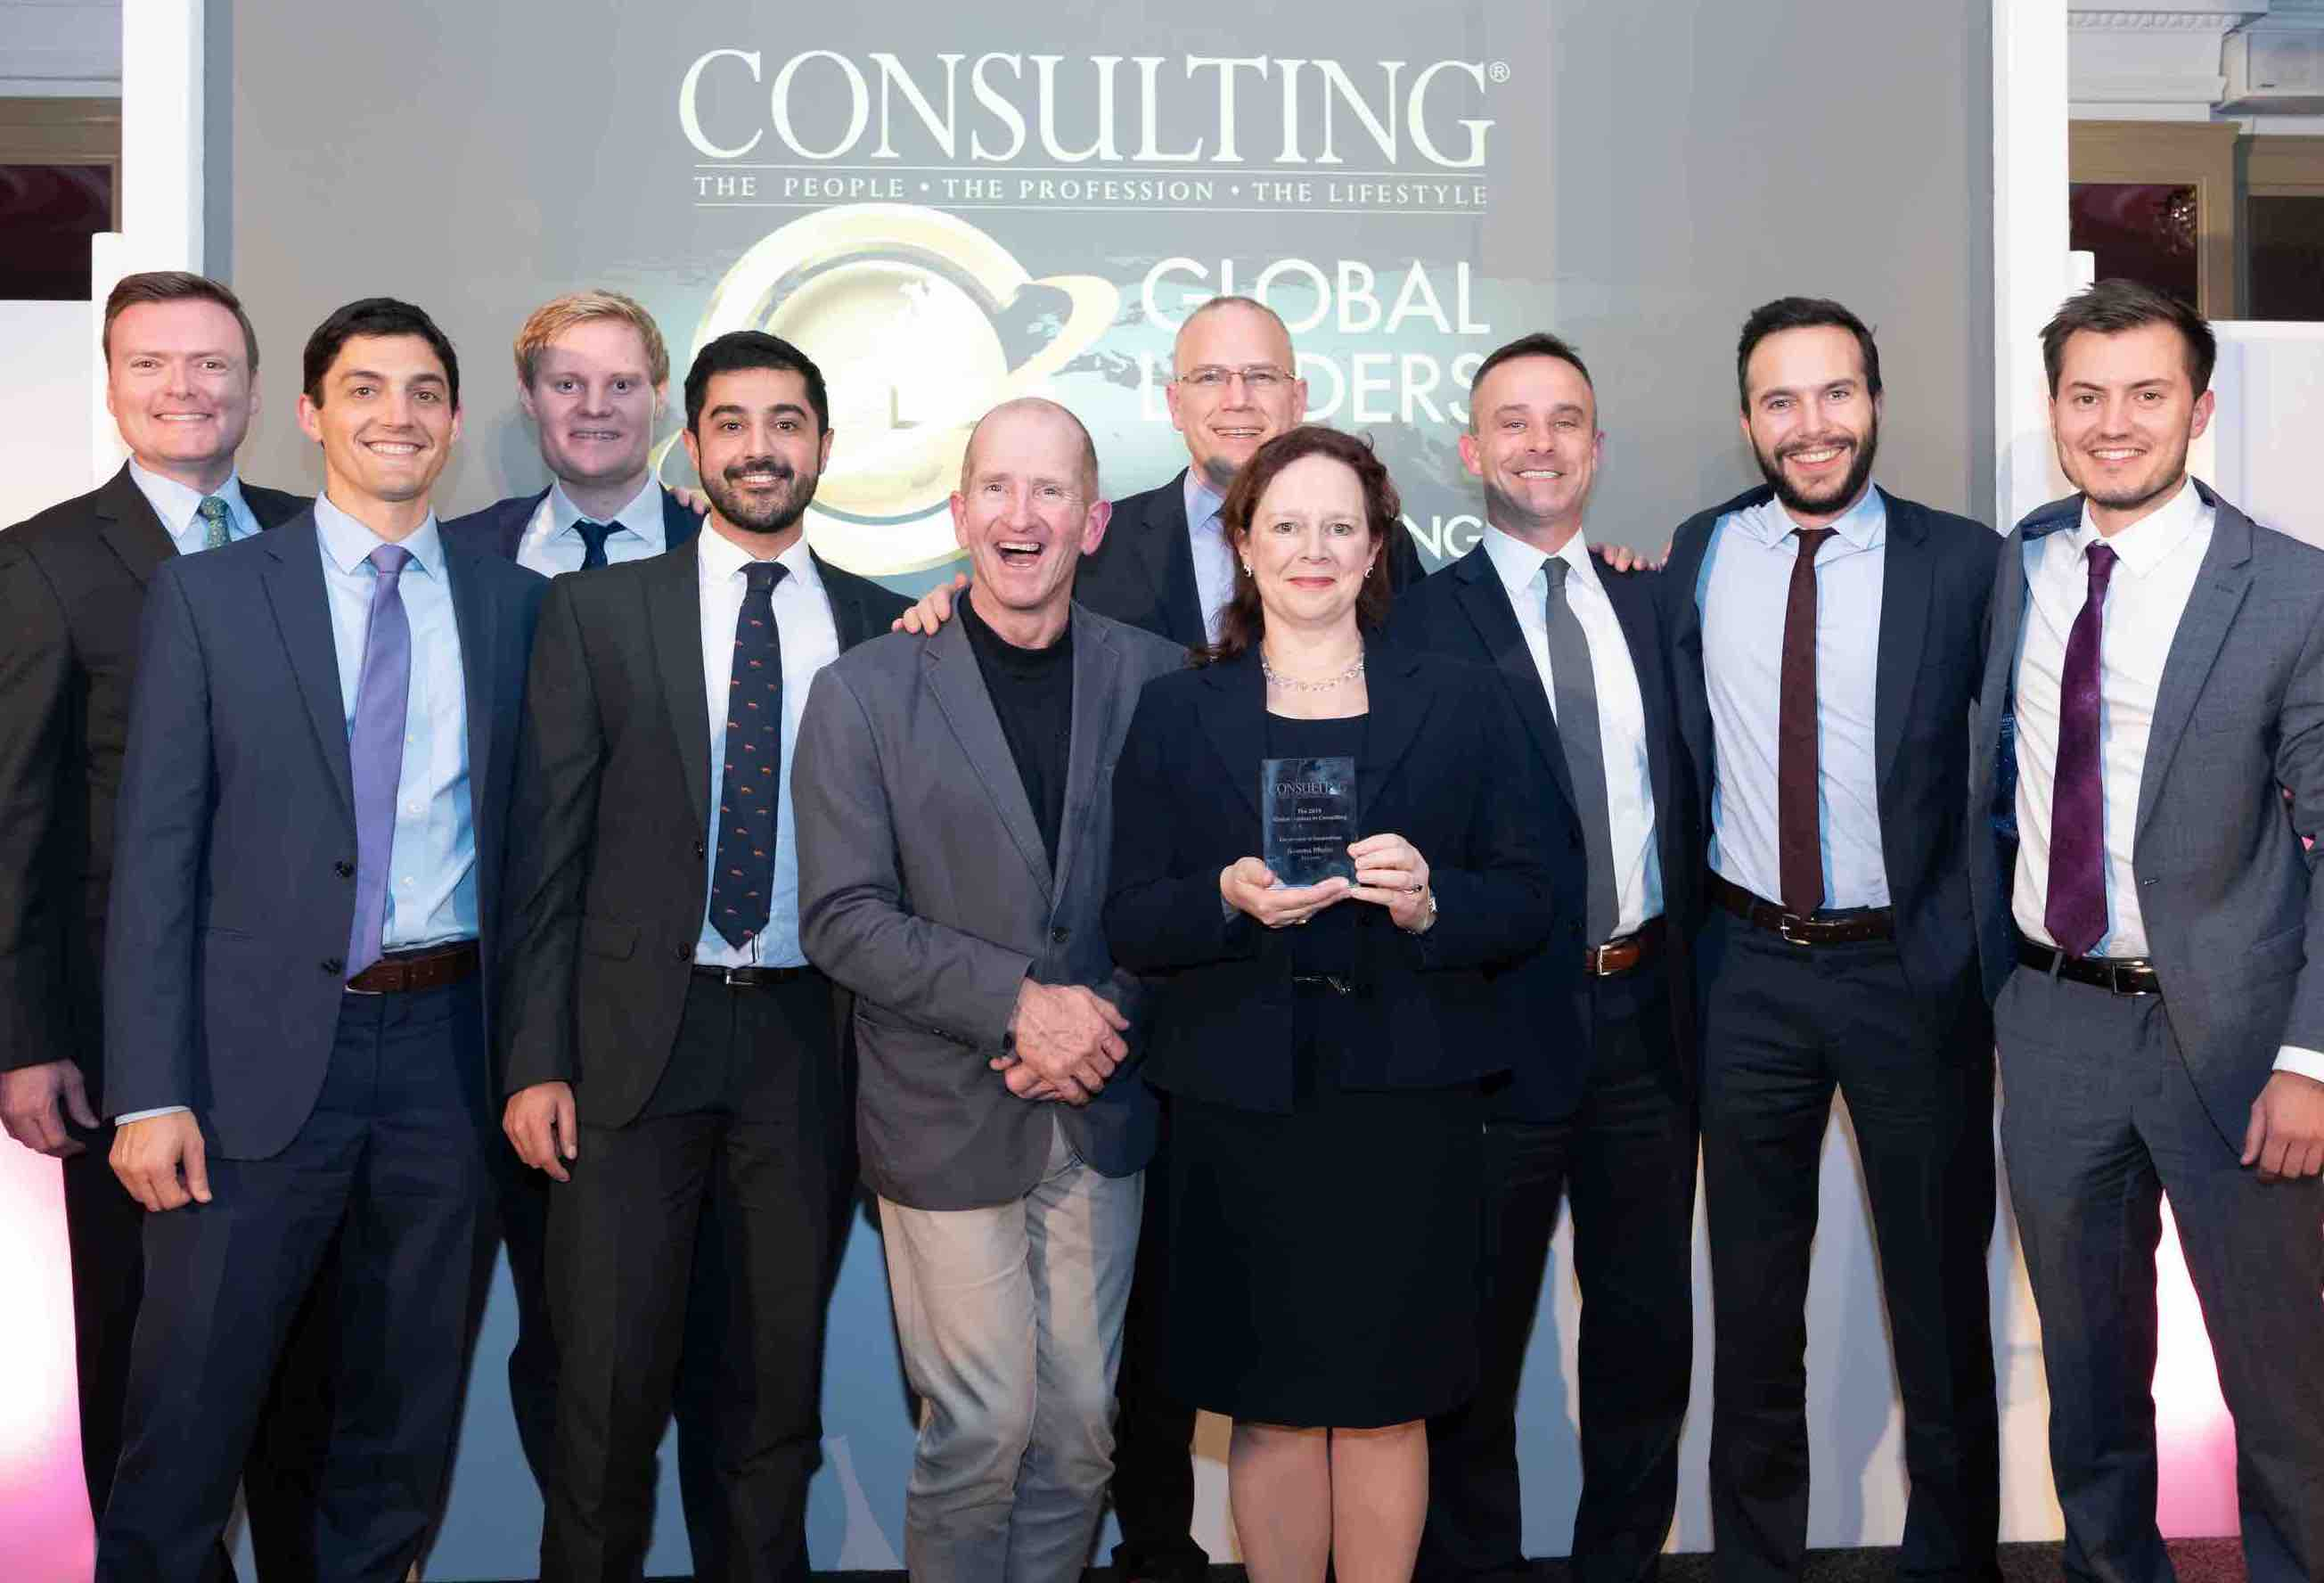 Gala Photos! The 2019 Global Leaders in Consulting